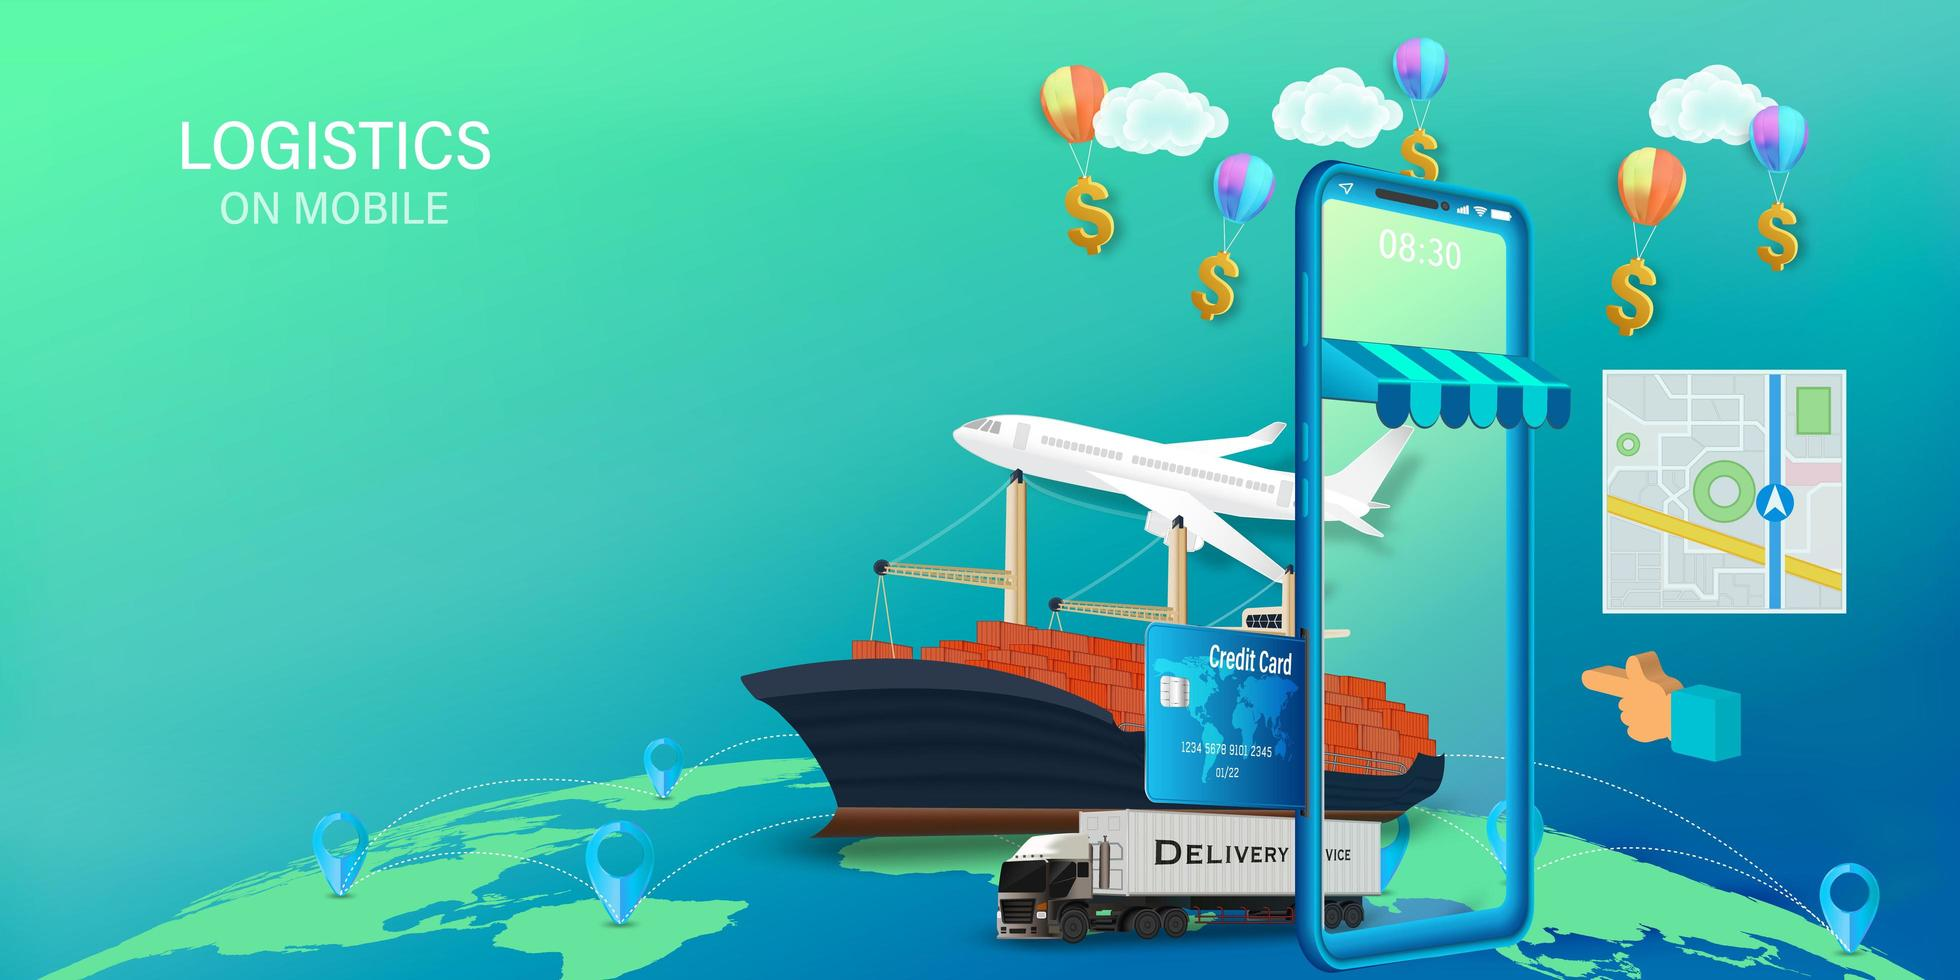 Logistics on mobile design with plane, ship and truck vector